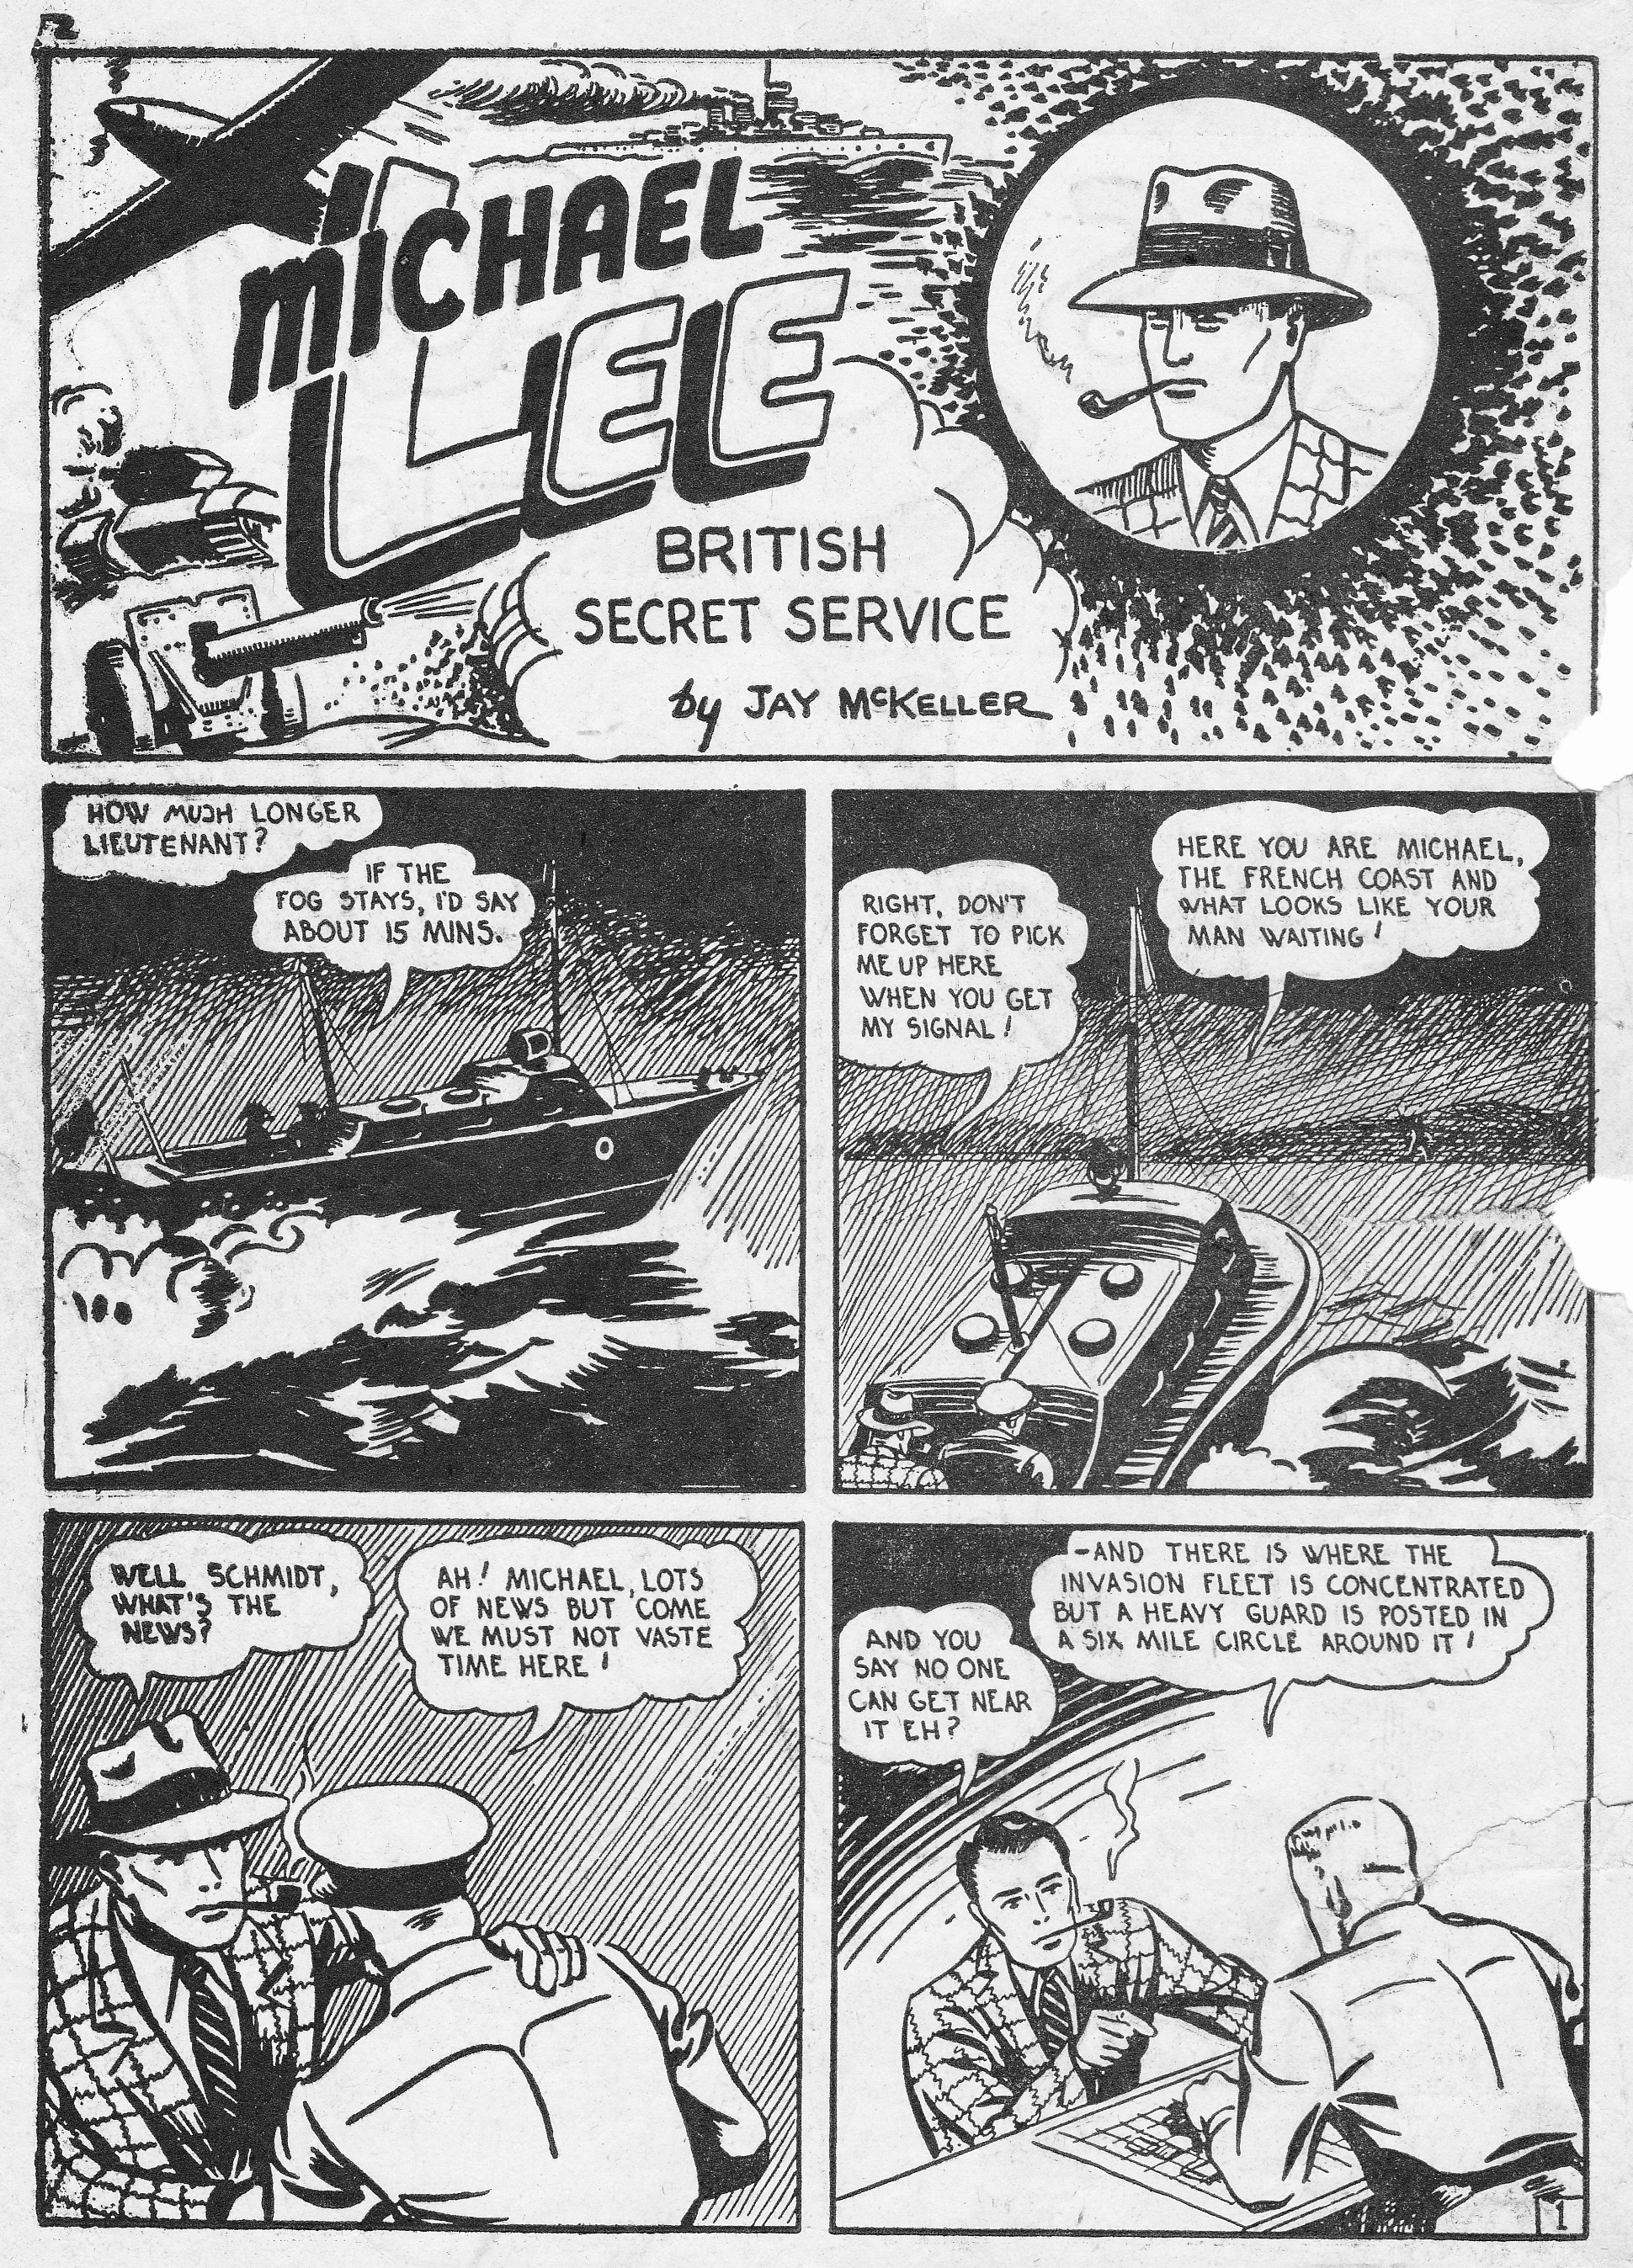 C:\Users\Robert\Documents\CARTOONING ILLUSTRATION ANIMATION\IMAGE CARTOON\IMAGE CARTOON M\MICHAEL LEE, Three Aces, 1-2, J-F 1942 ,2.jpg